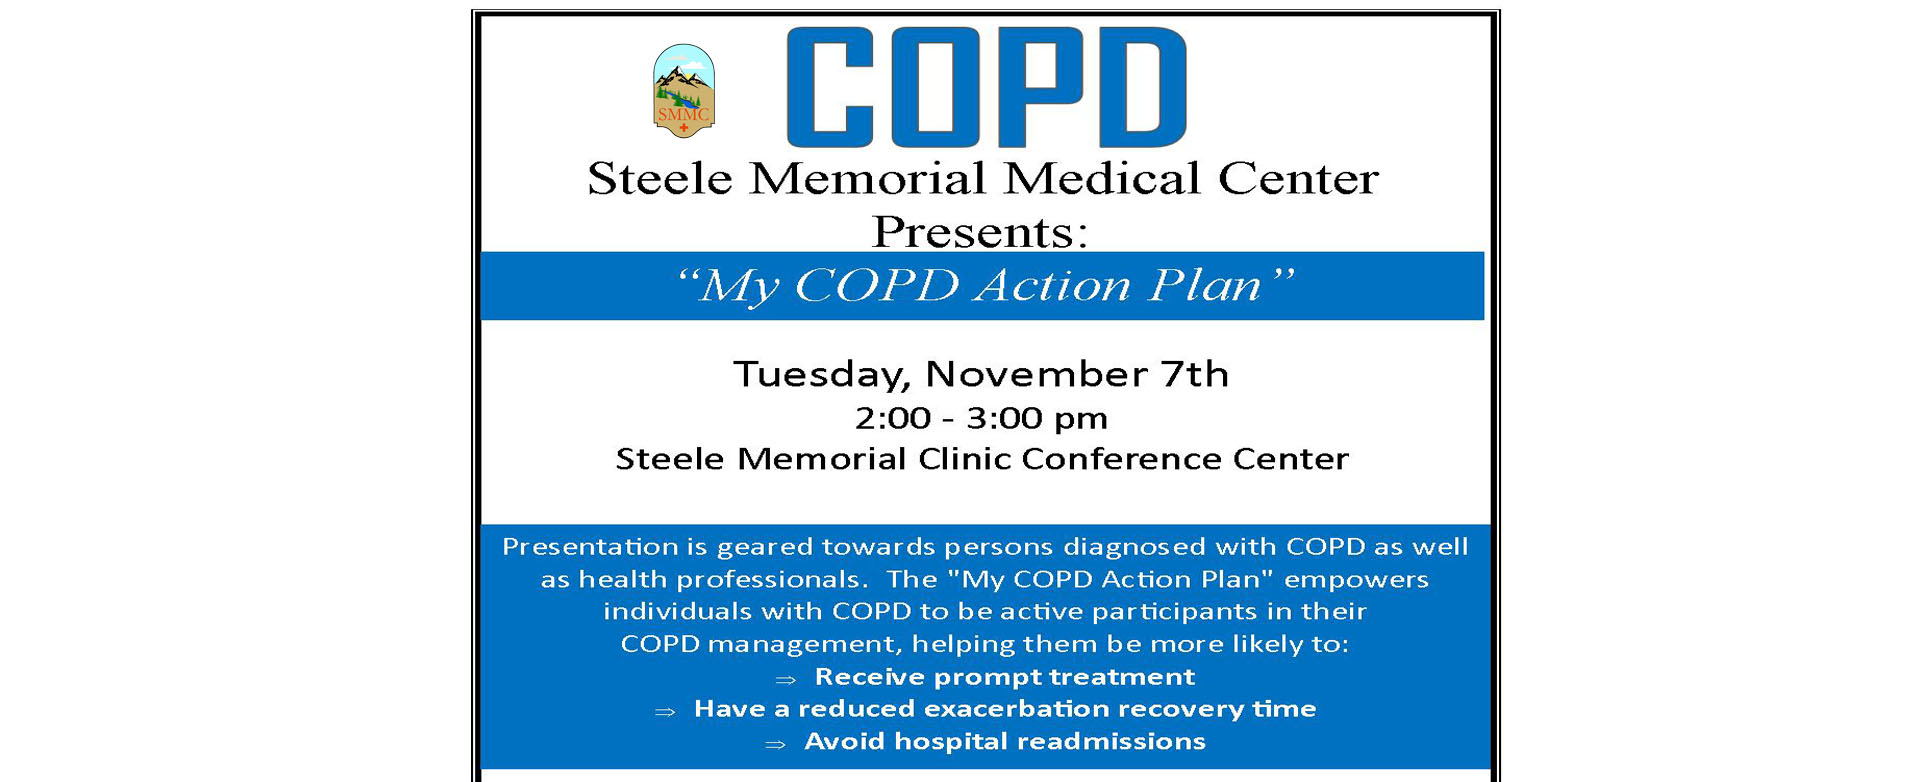 COPD Education Presentation